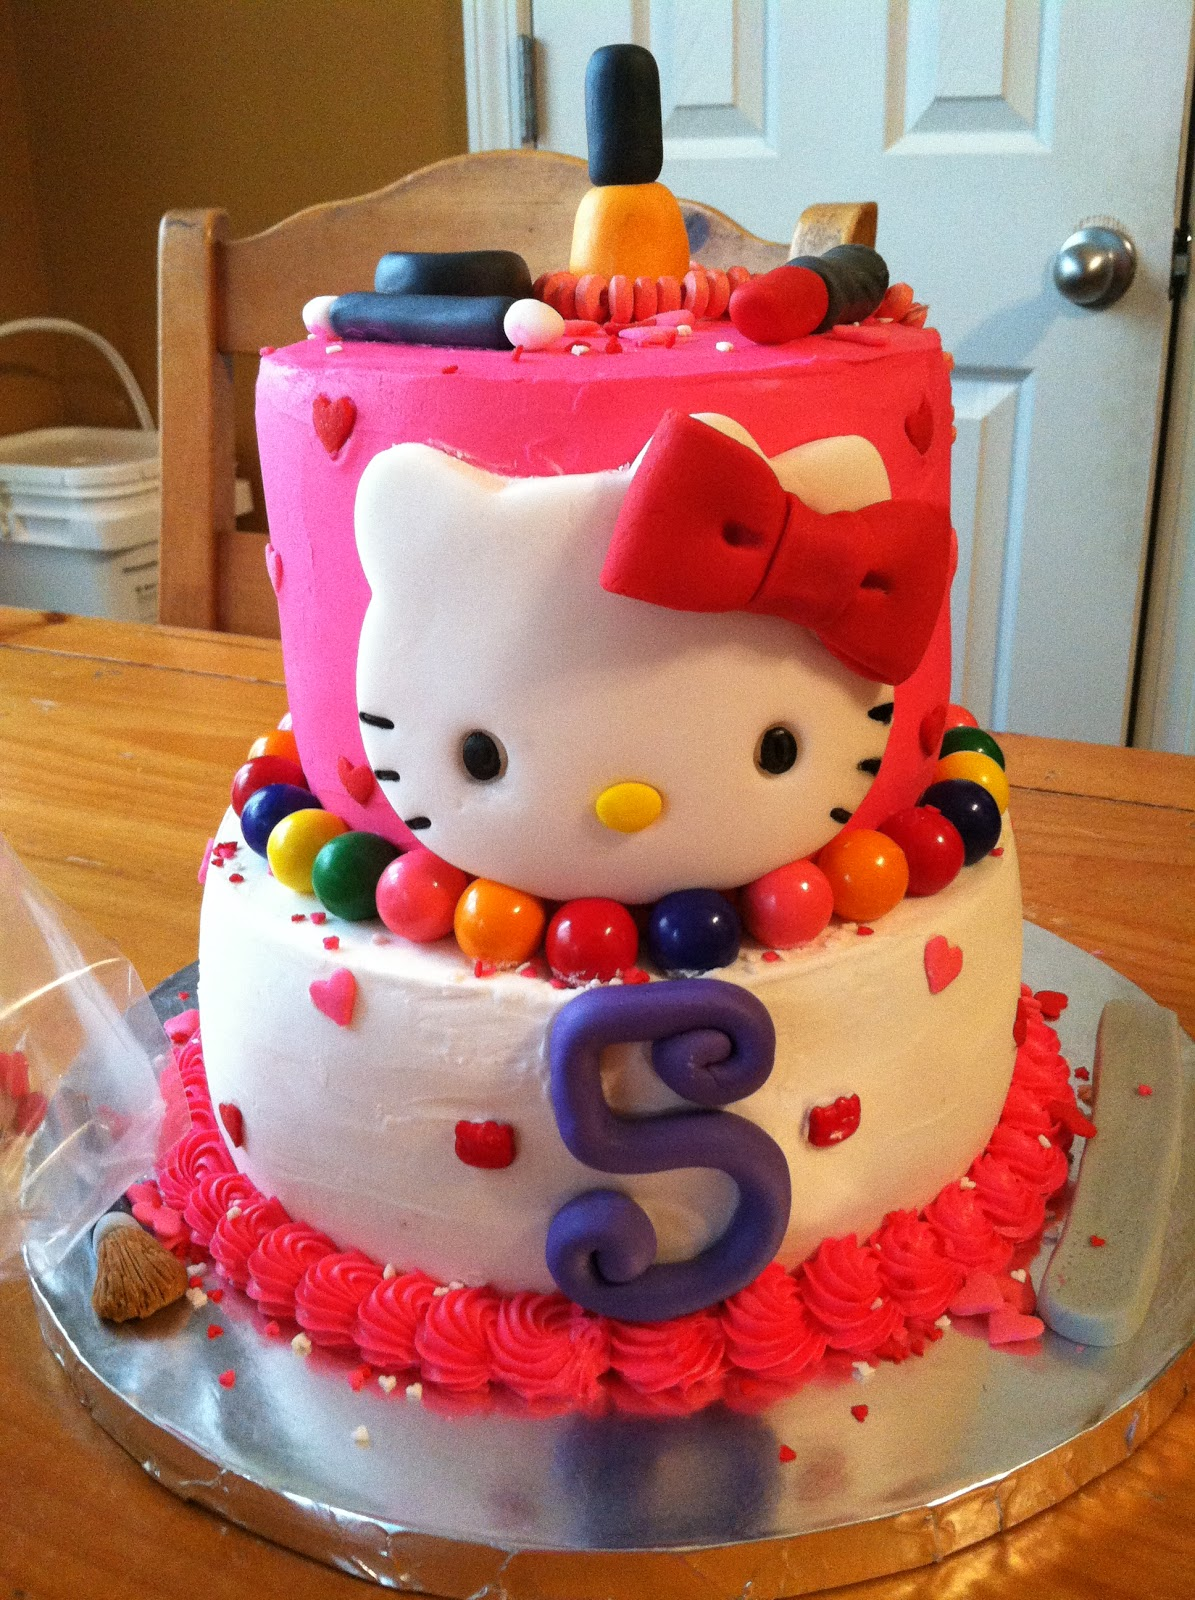 Introducing Hello Kitty Cake For A 5 Year Old